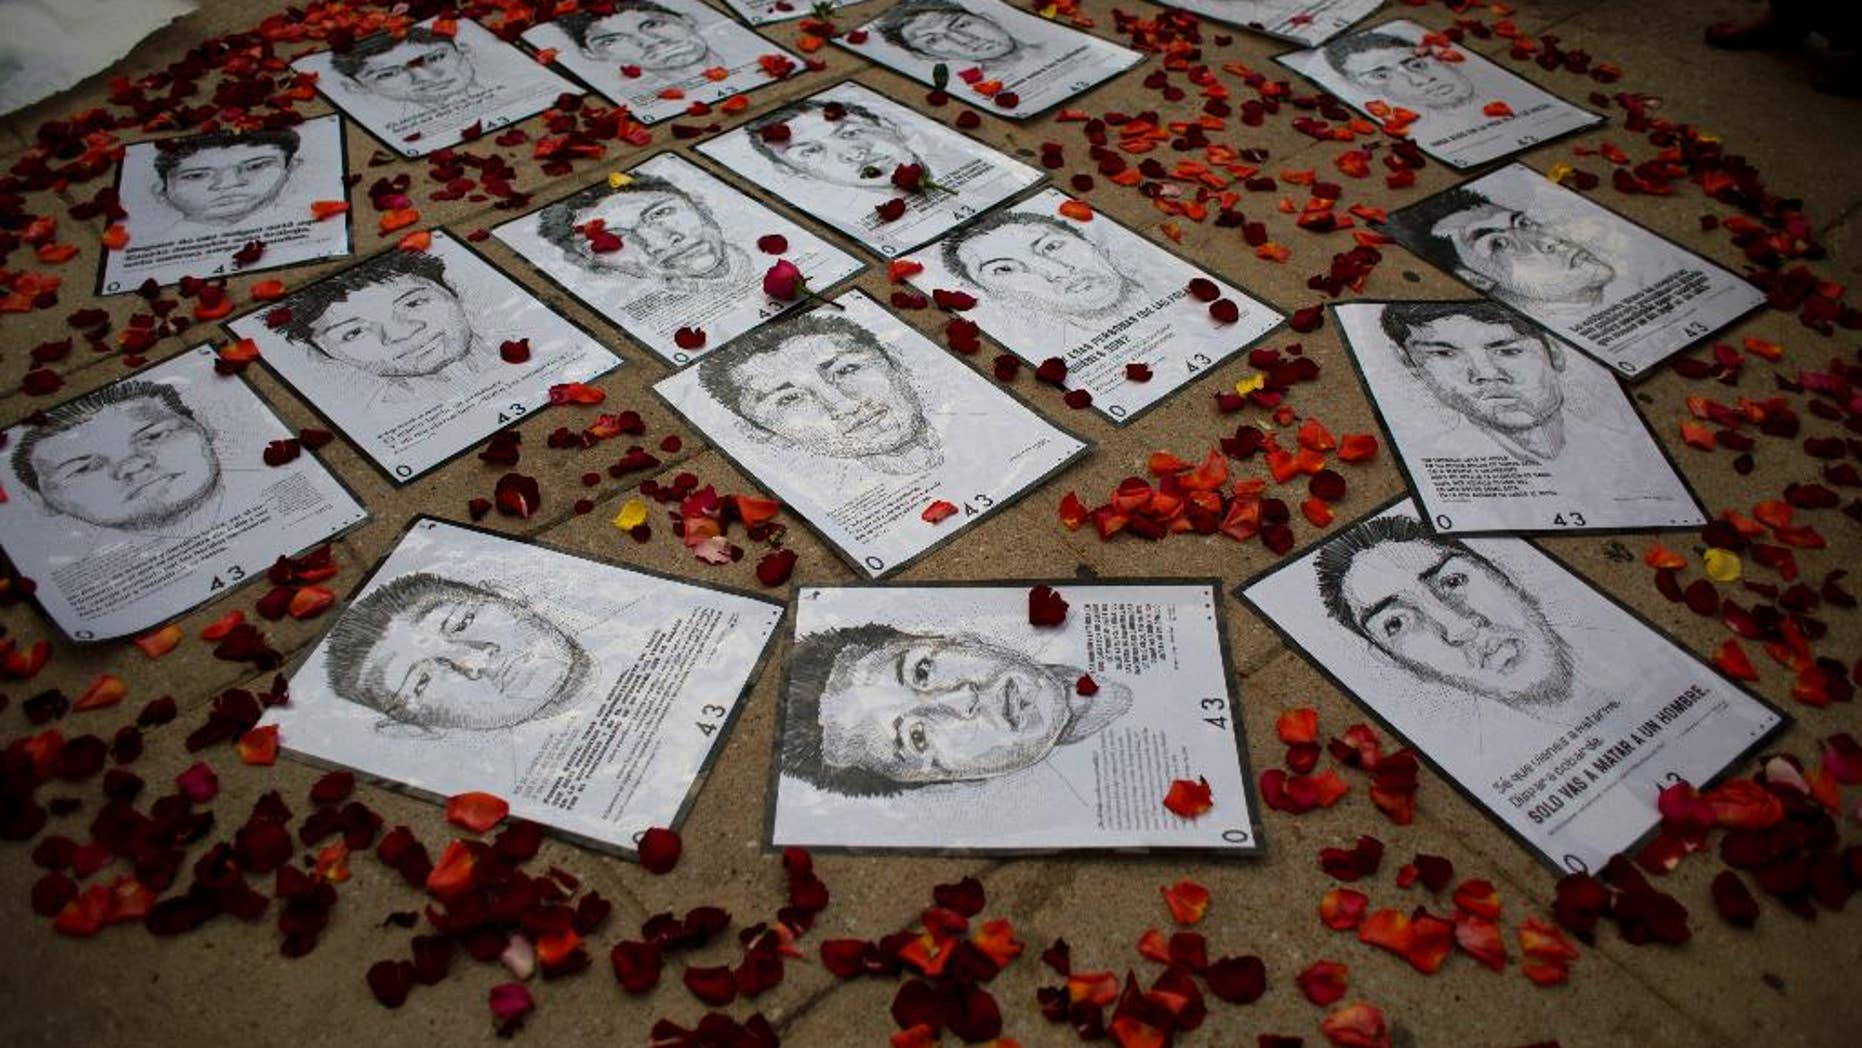 FILE - In this March 26, 2015 file photo, drawings of some of 43 missing rural college students are surrounded by flower petals, forming the shape of a heart, during a protest marking the six-month anniversary of their disappearance, in Mexico City. As millions of Mexicans set up altars to the dead and buy orange flowers to adorn the offerings of food and drink, the parents of 43 students missing since September 2014 are marching, protesting, and seeking other ways to remember their sons, fiercely refusing to accept the government's explanation that they are dead. (AP Photo/Rebecca Blackwell, File)